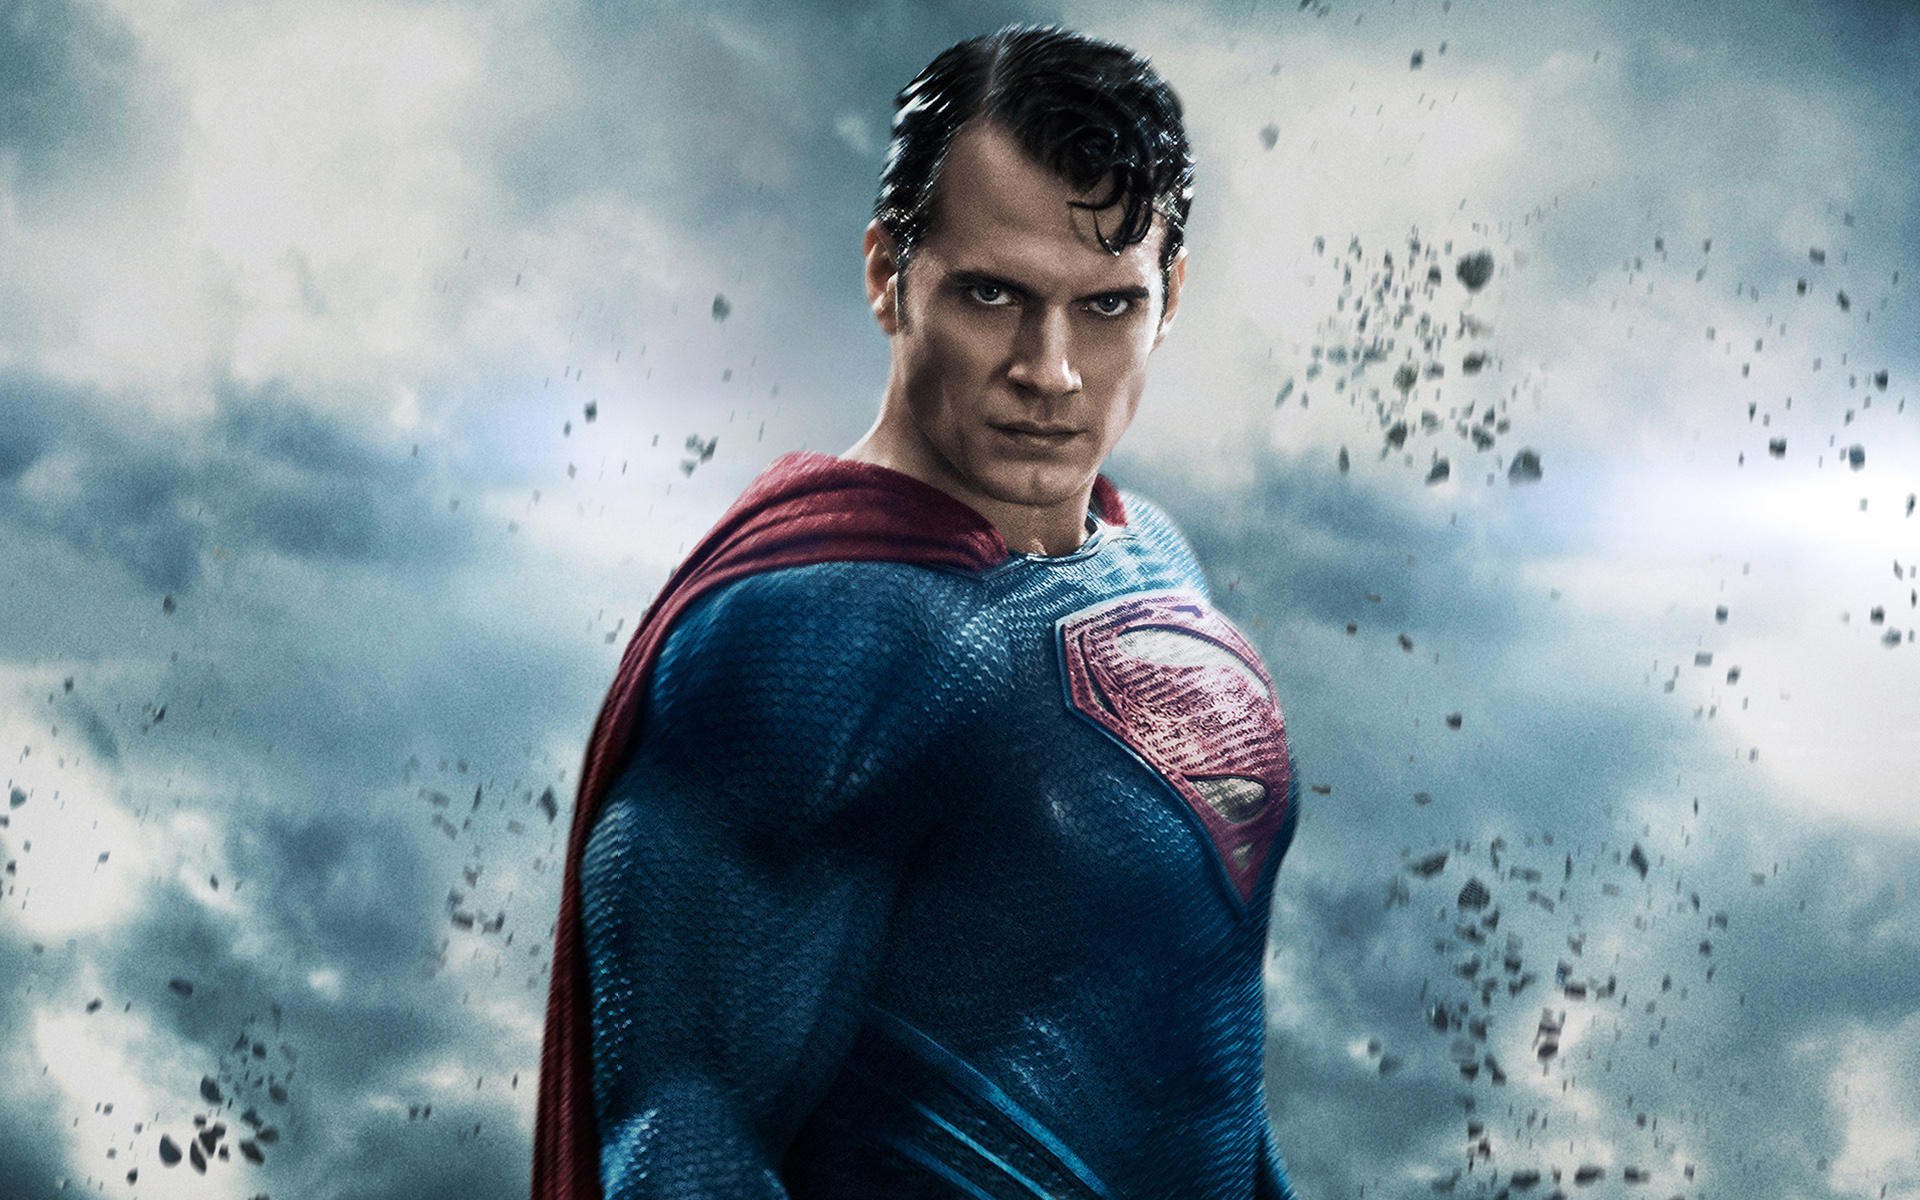 Warner Bros reportedly eyeing Matthew Vaughn for Man of Steel sequel